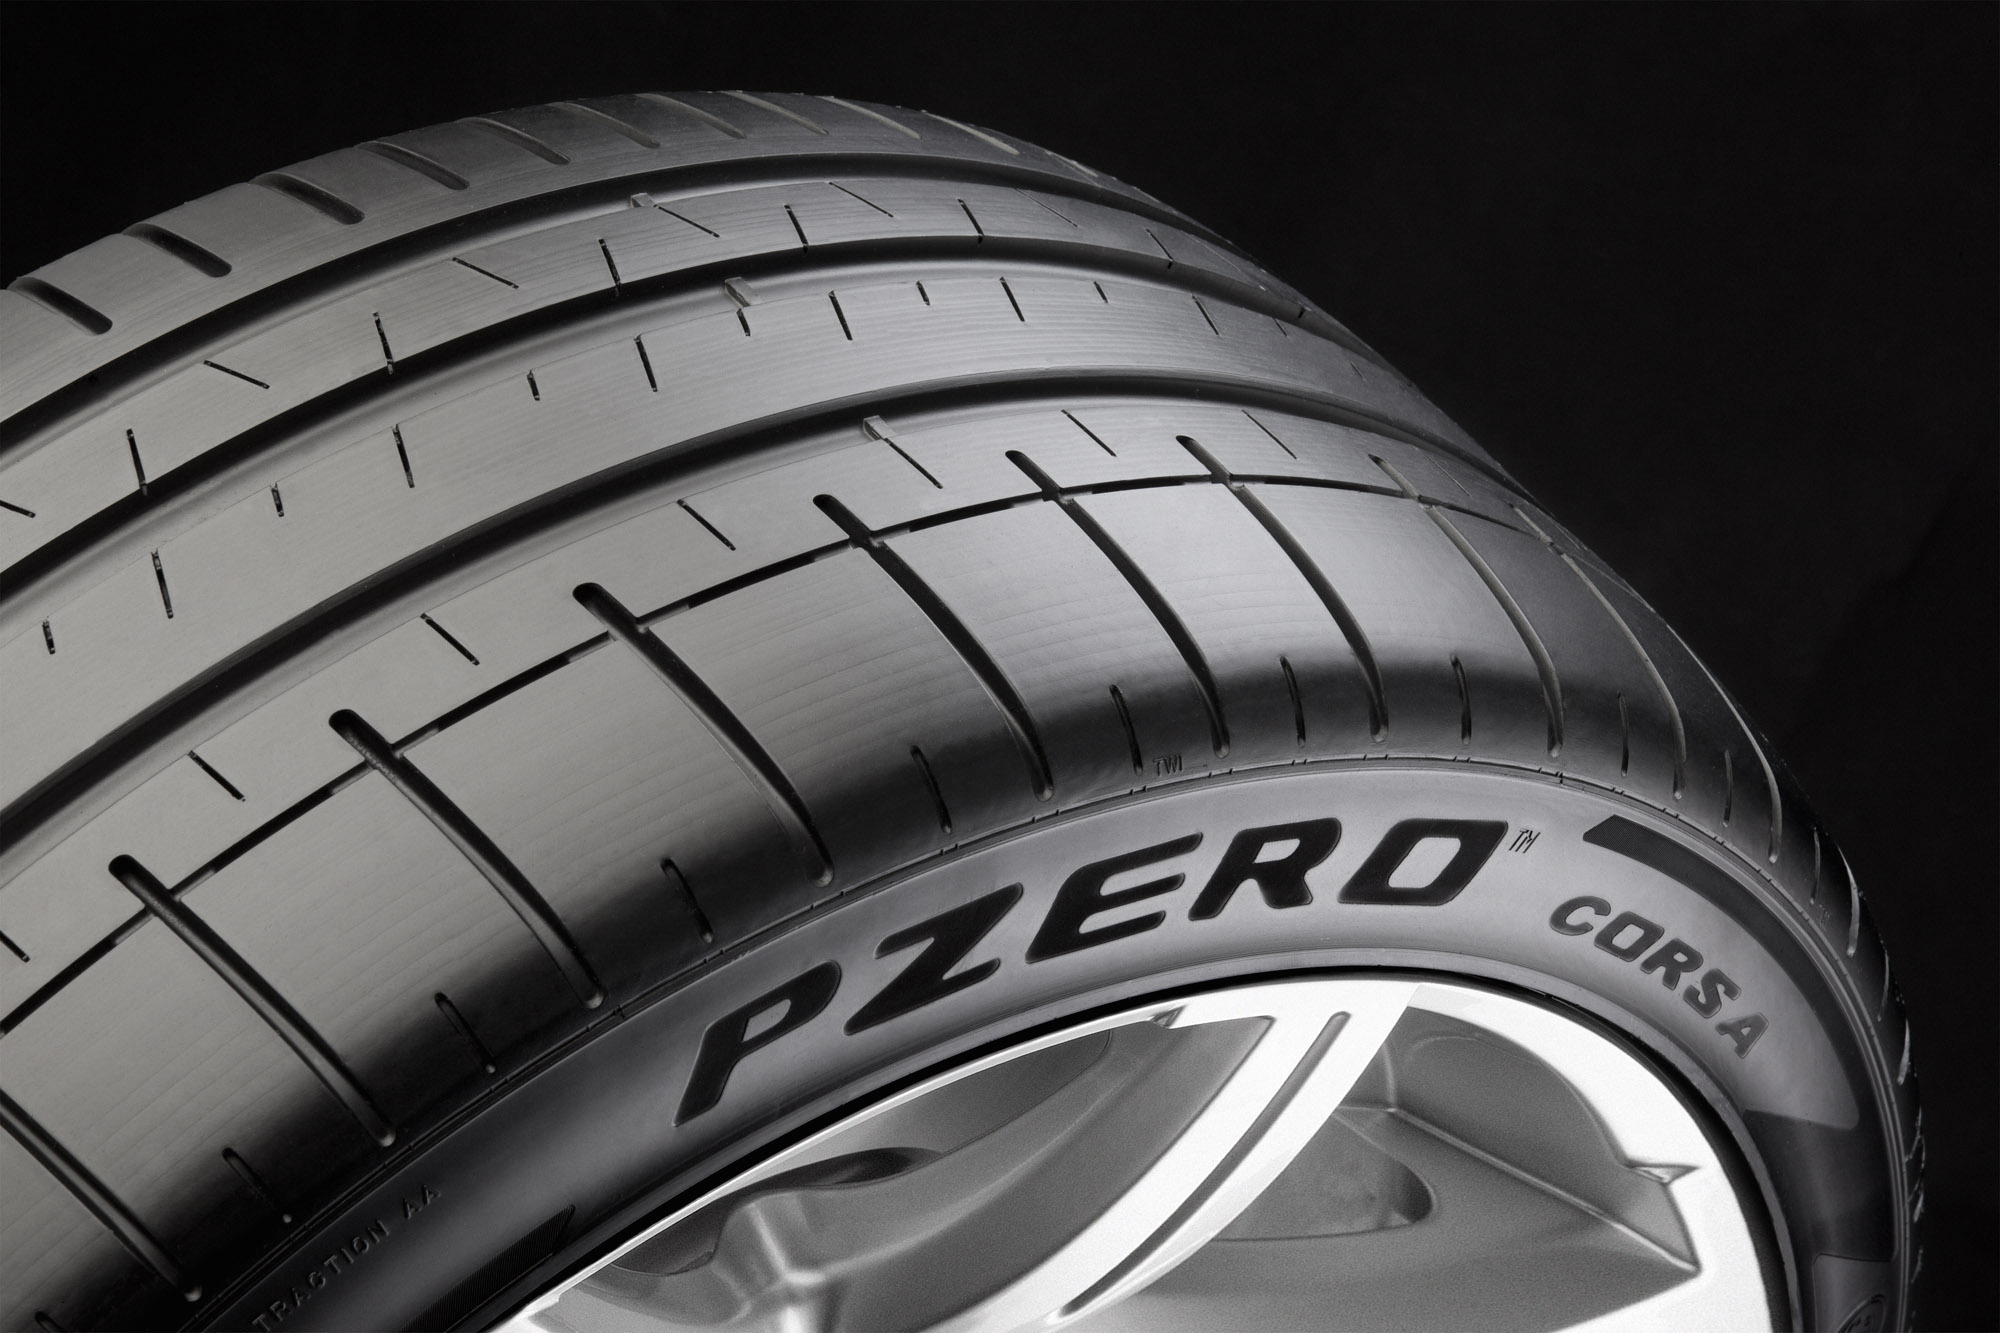 Pirelli P Zero >> Pirelli P Zero tyres with F1 tech launched in Shanghai Image 486505